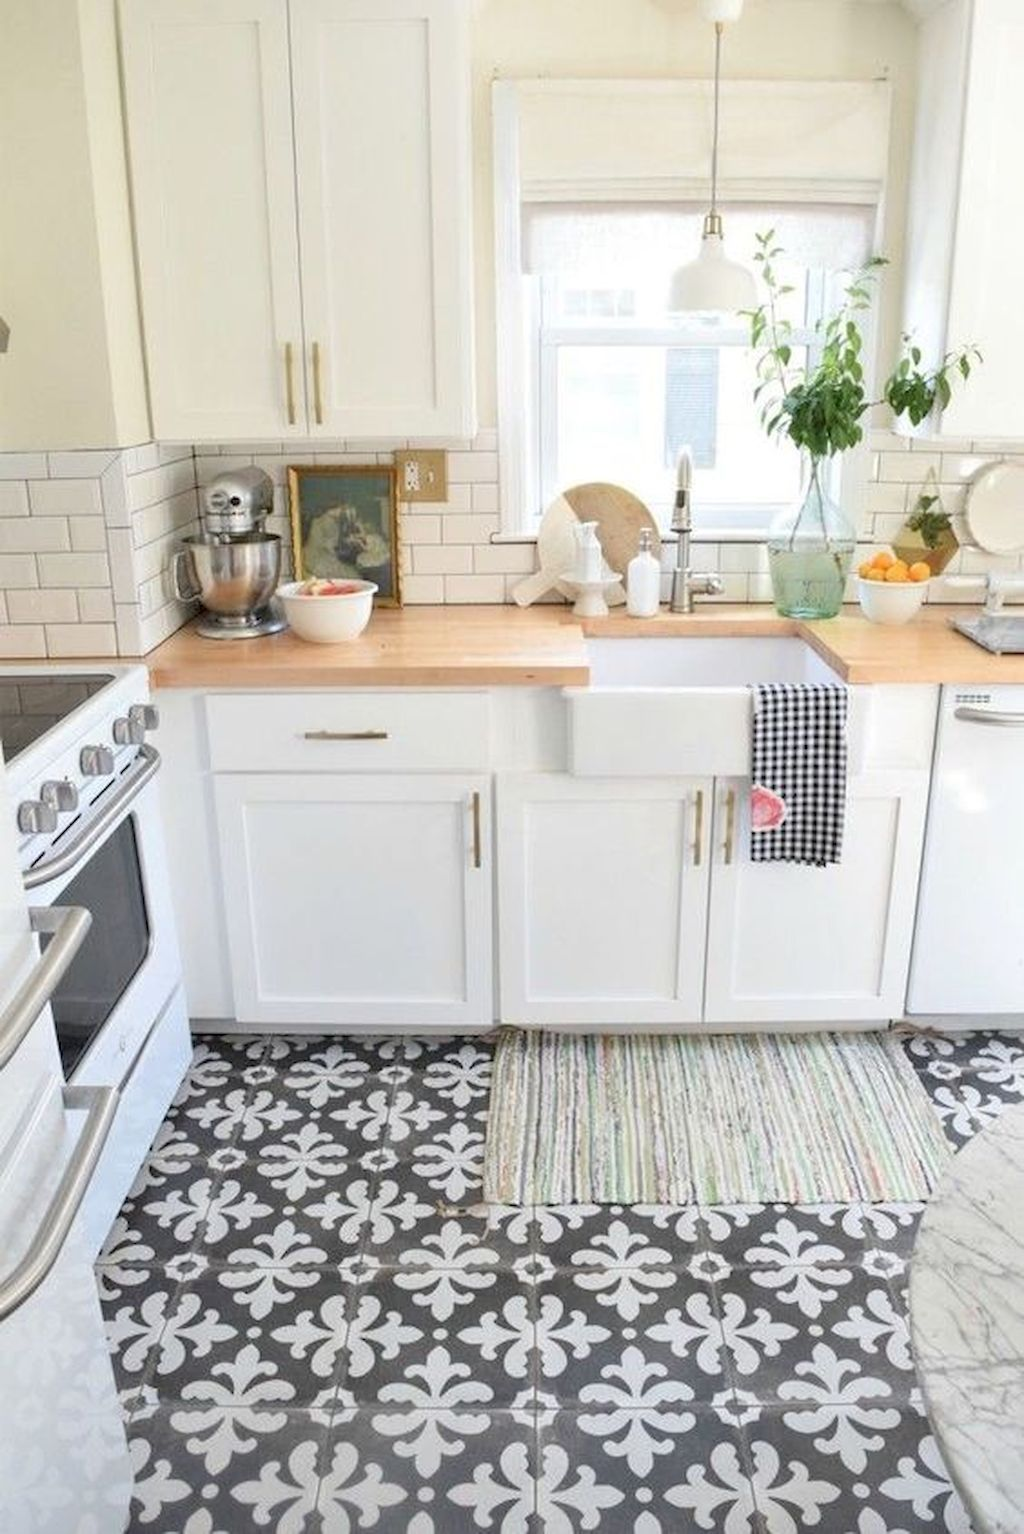 65 Gorgeous Kitchen Floor Tiles Design Ideas